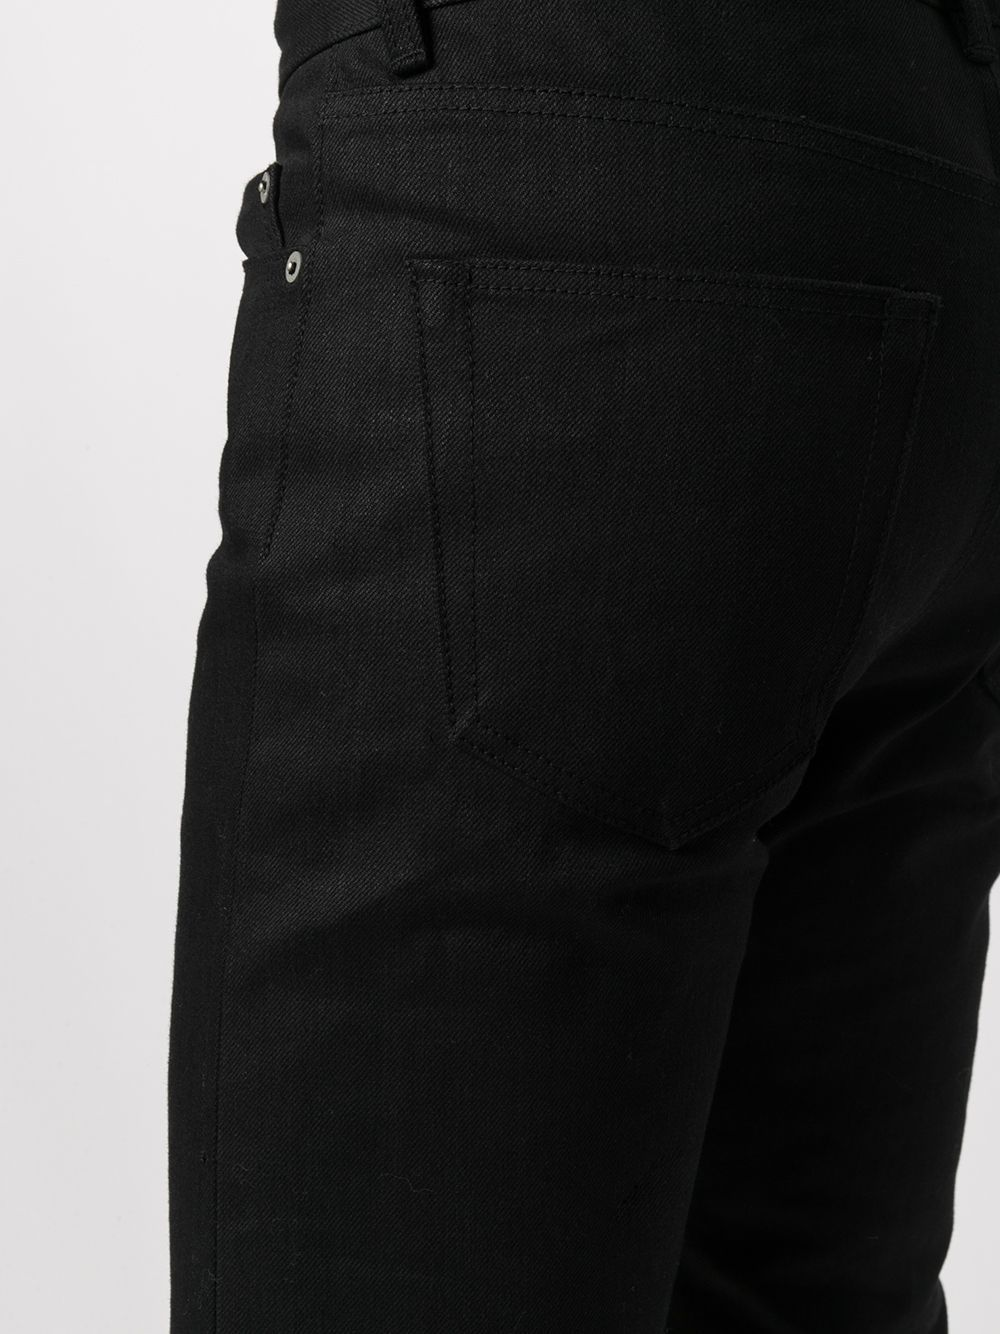 jeans dritti uomo neri in cotone RICK OWENS | Jeans | RR02A5309 HBLKJP09